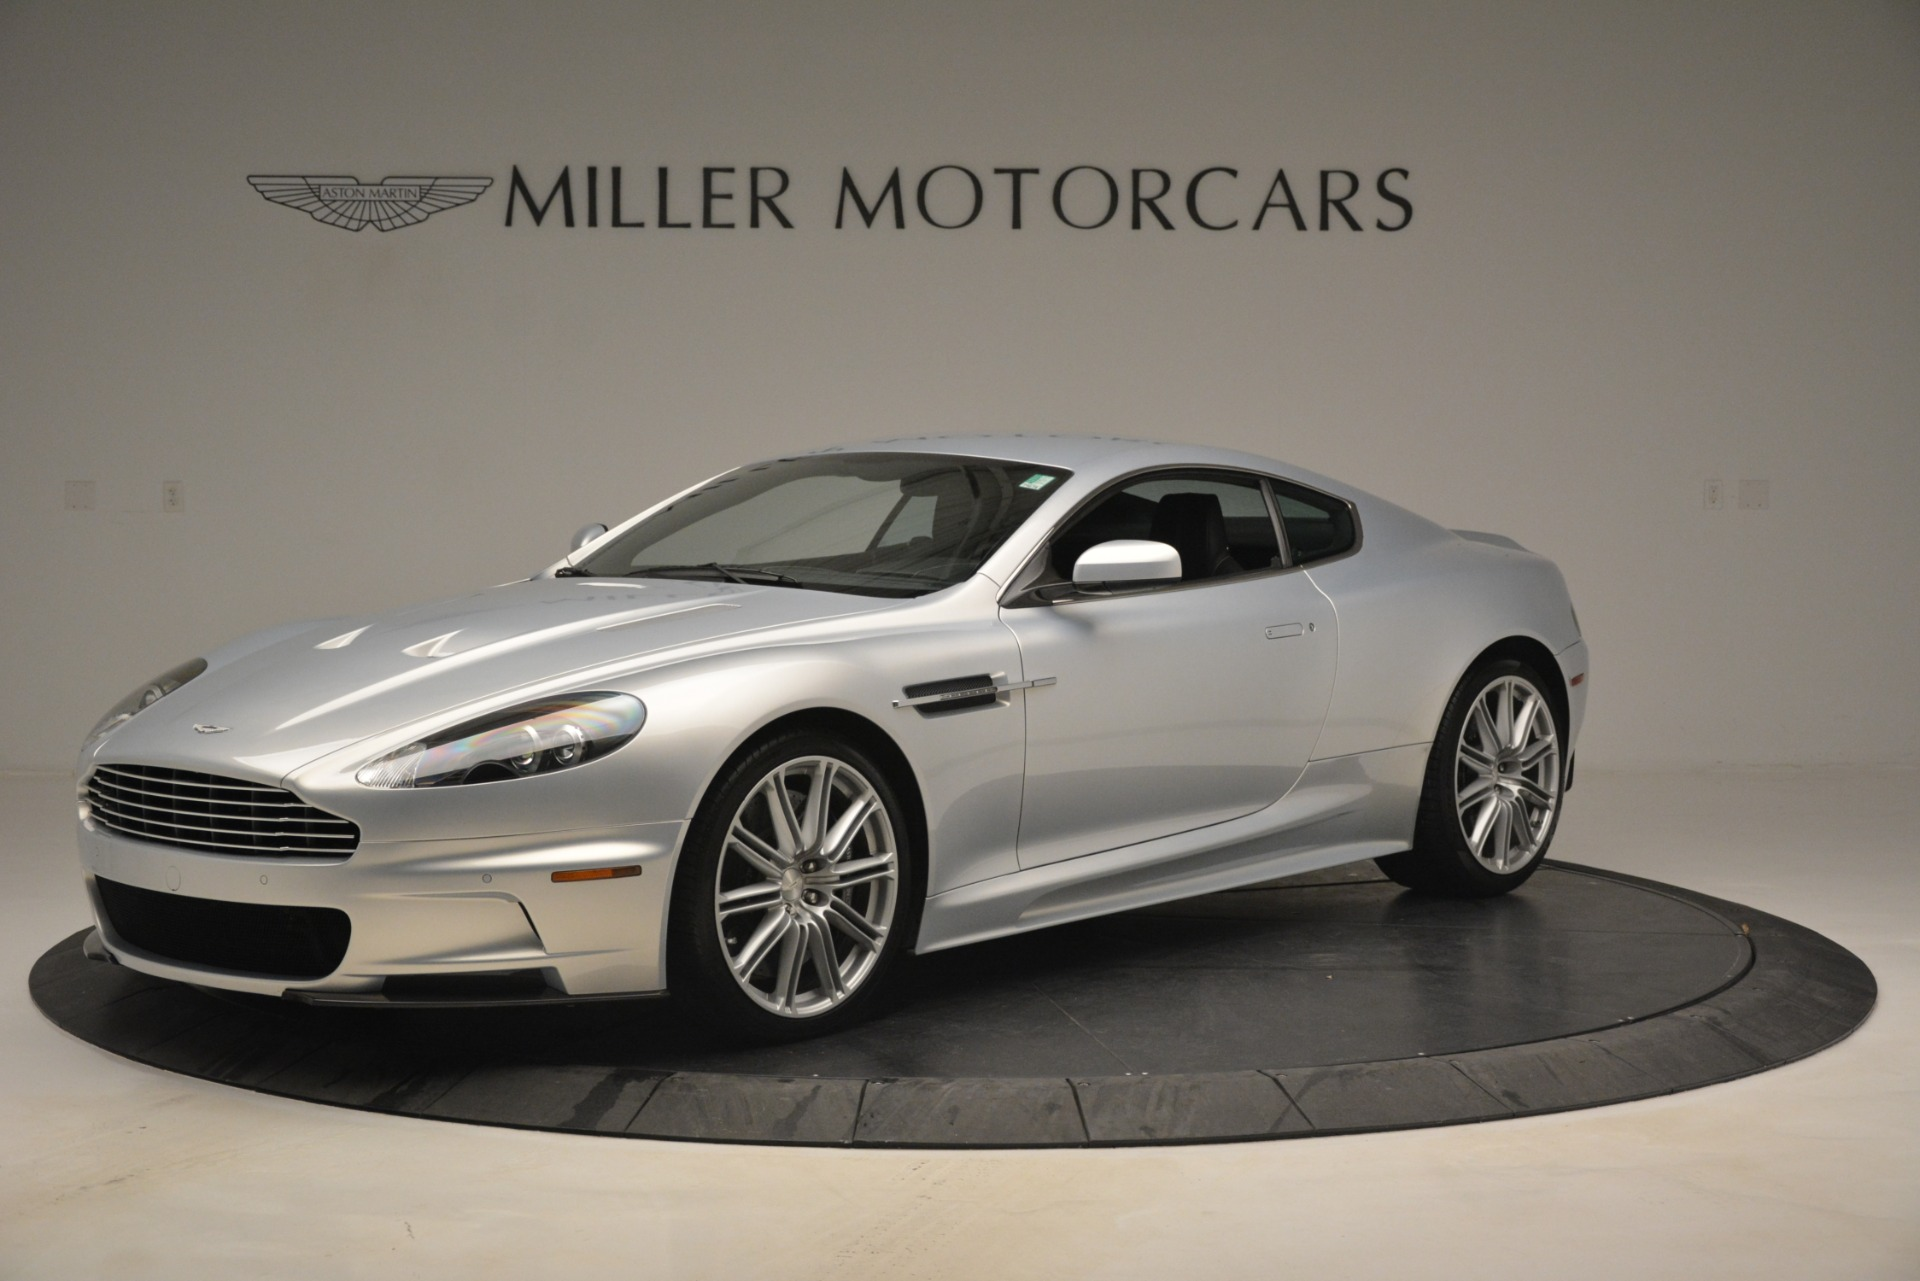 Used 2009 Aston Martin DBS Coupe for sale Sold at Alfa Romeo of Westport in Westport CT 06880 1